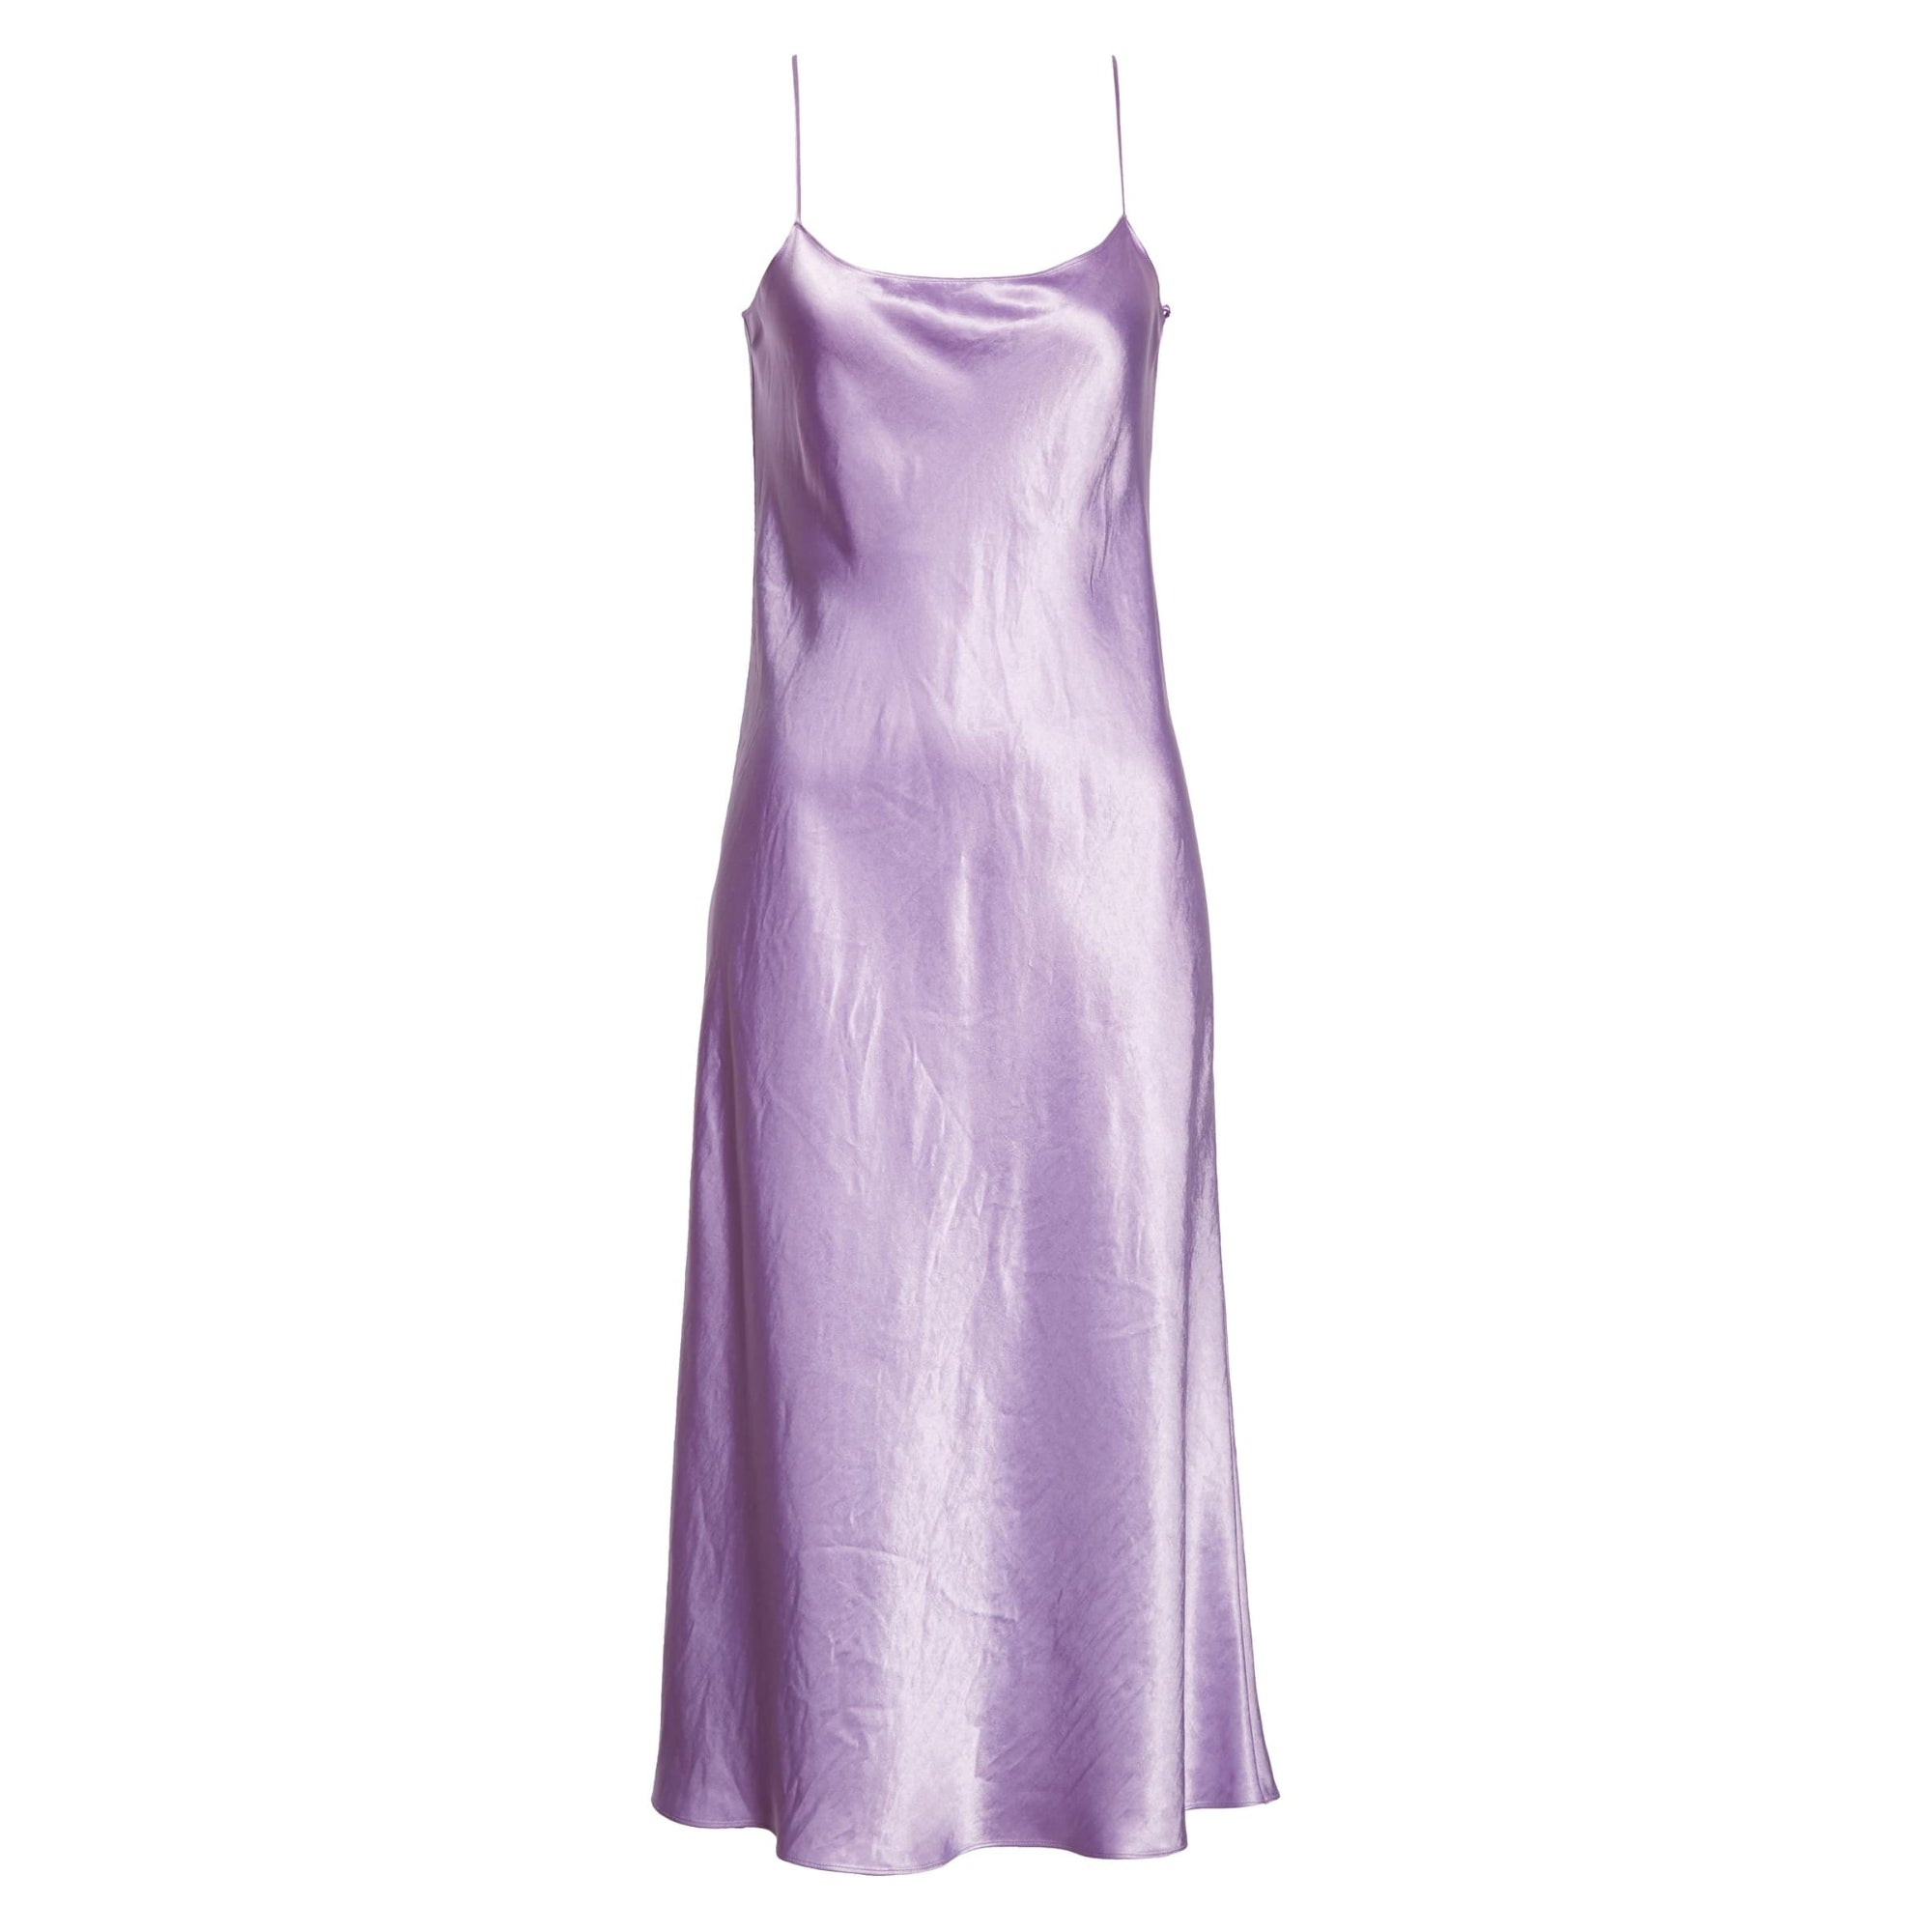 VINCE Satin Midi Slip Dress - Nordstrom